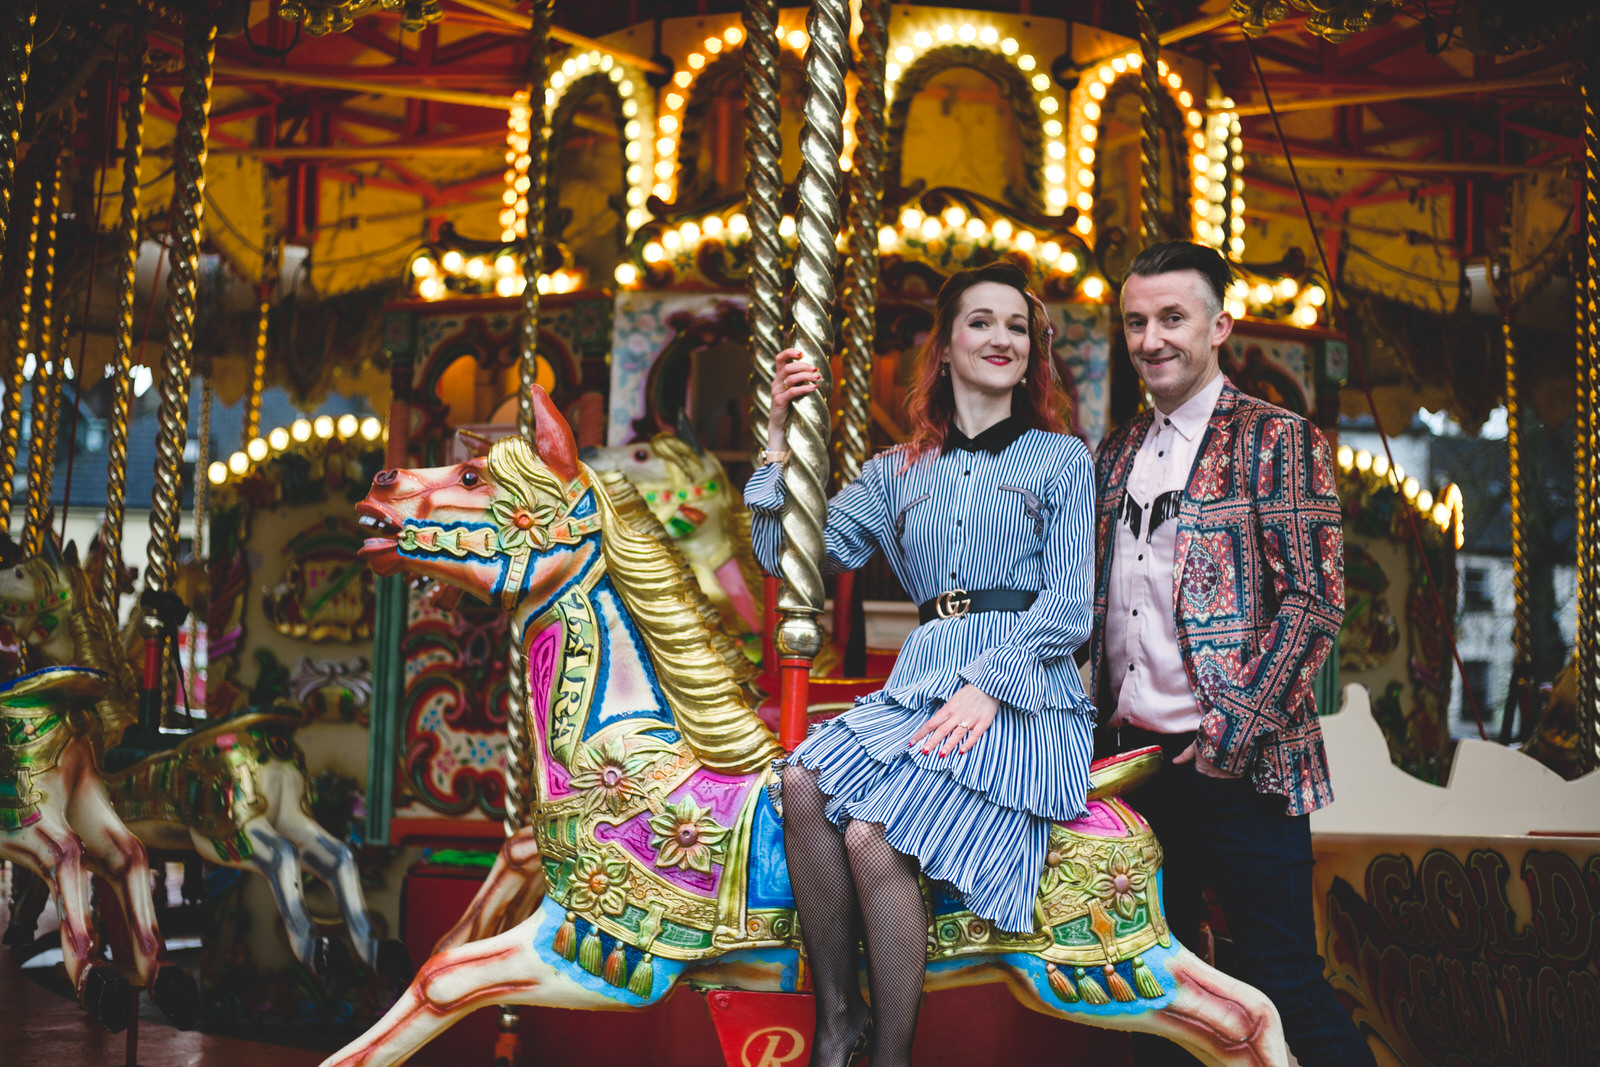 Super funky wedding couple on a fairground merry-go-round